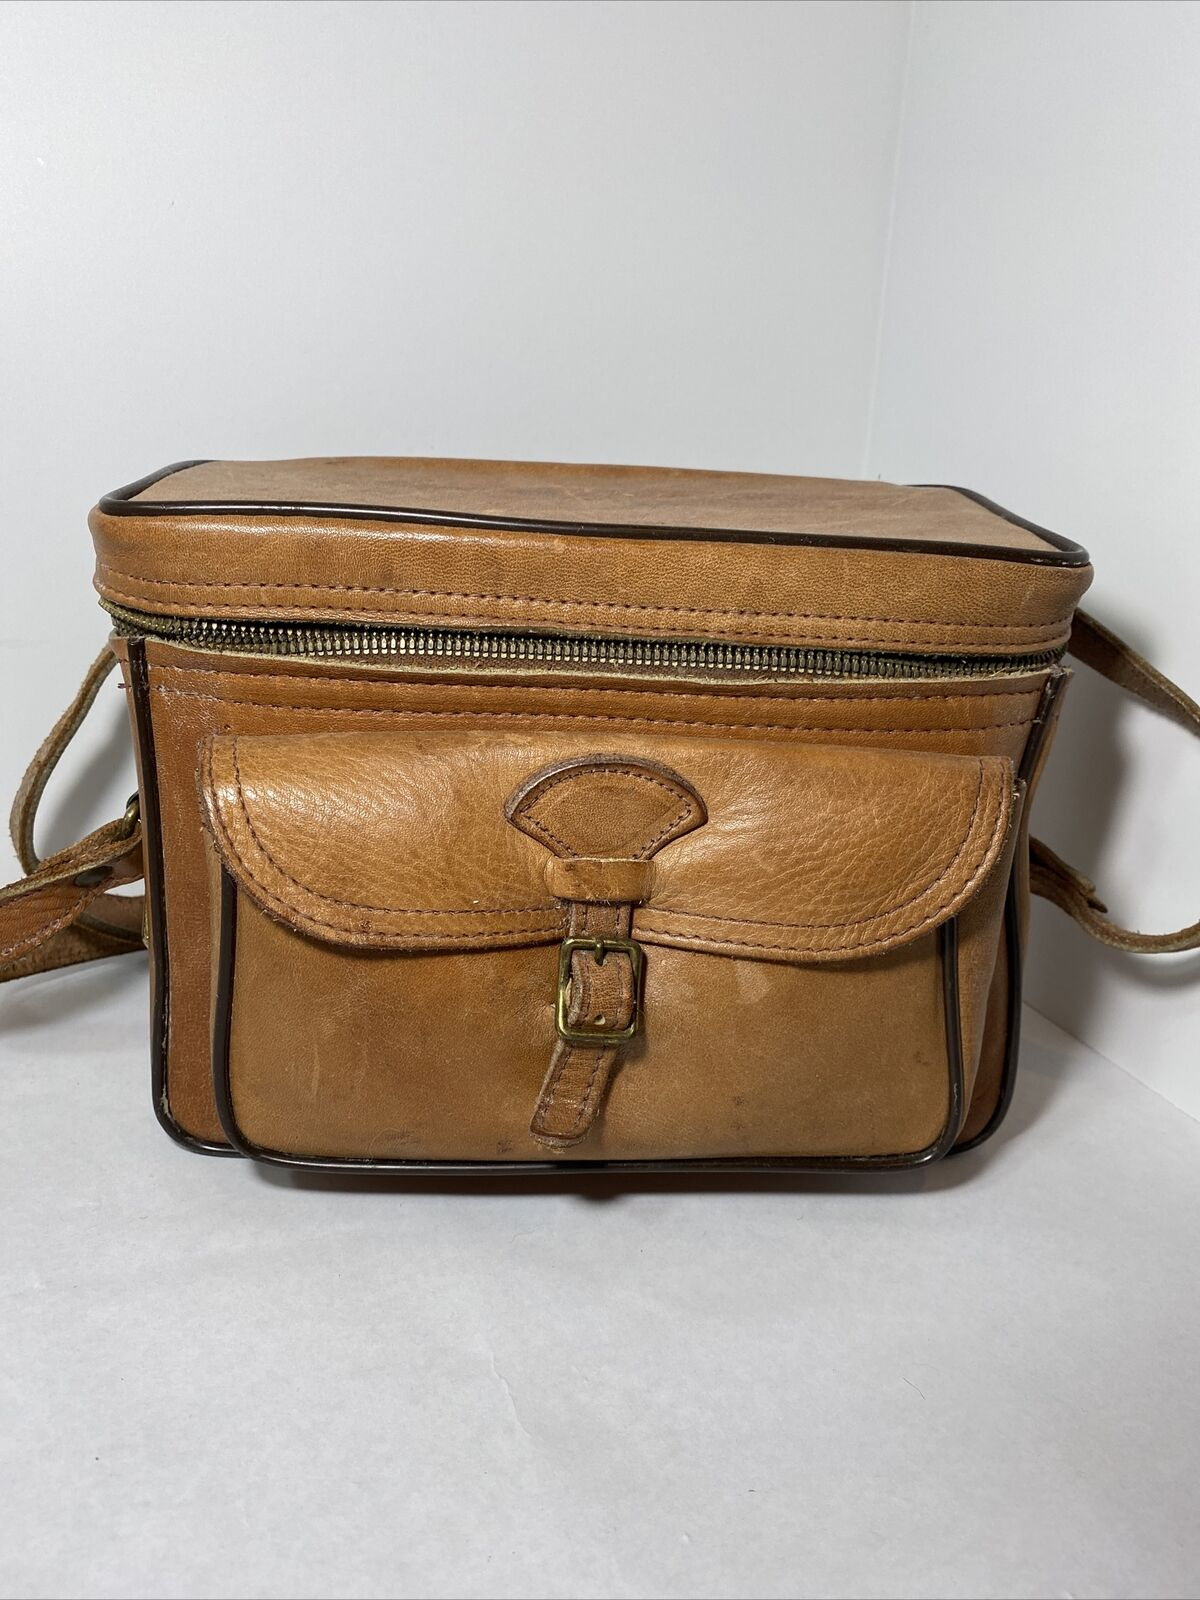 Vintage Perrin CAMERA CASE Cowhide Leather Sportsman 501 bag carrying tote 60s